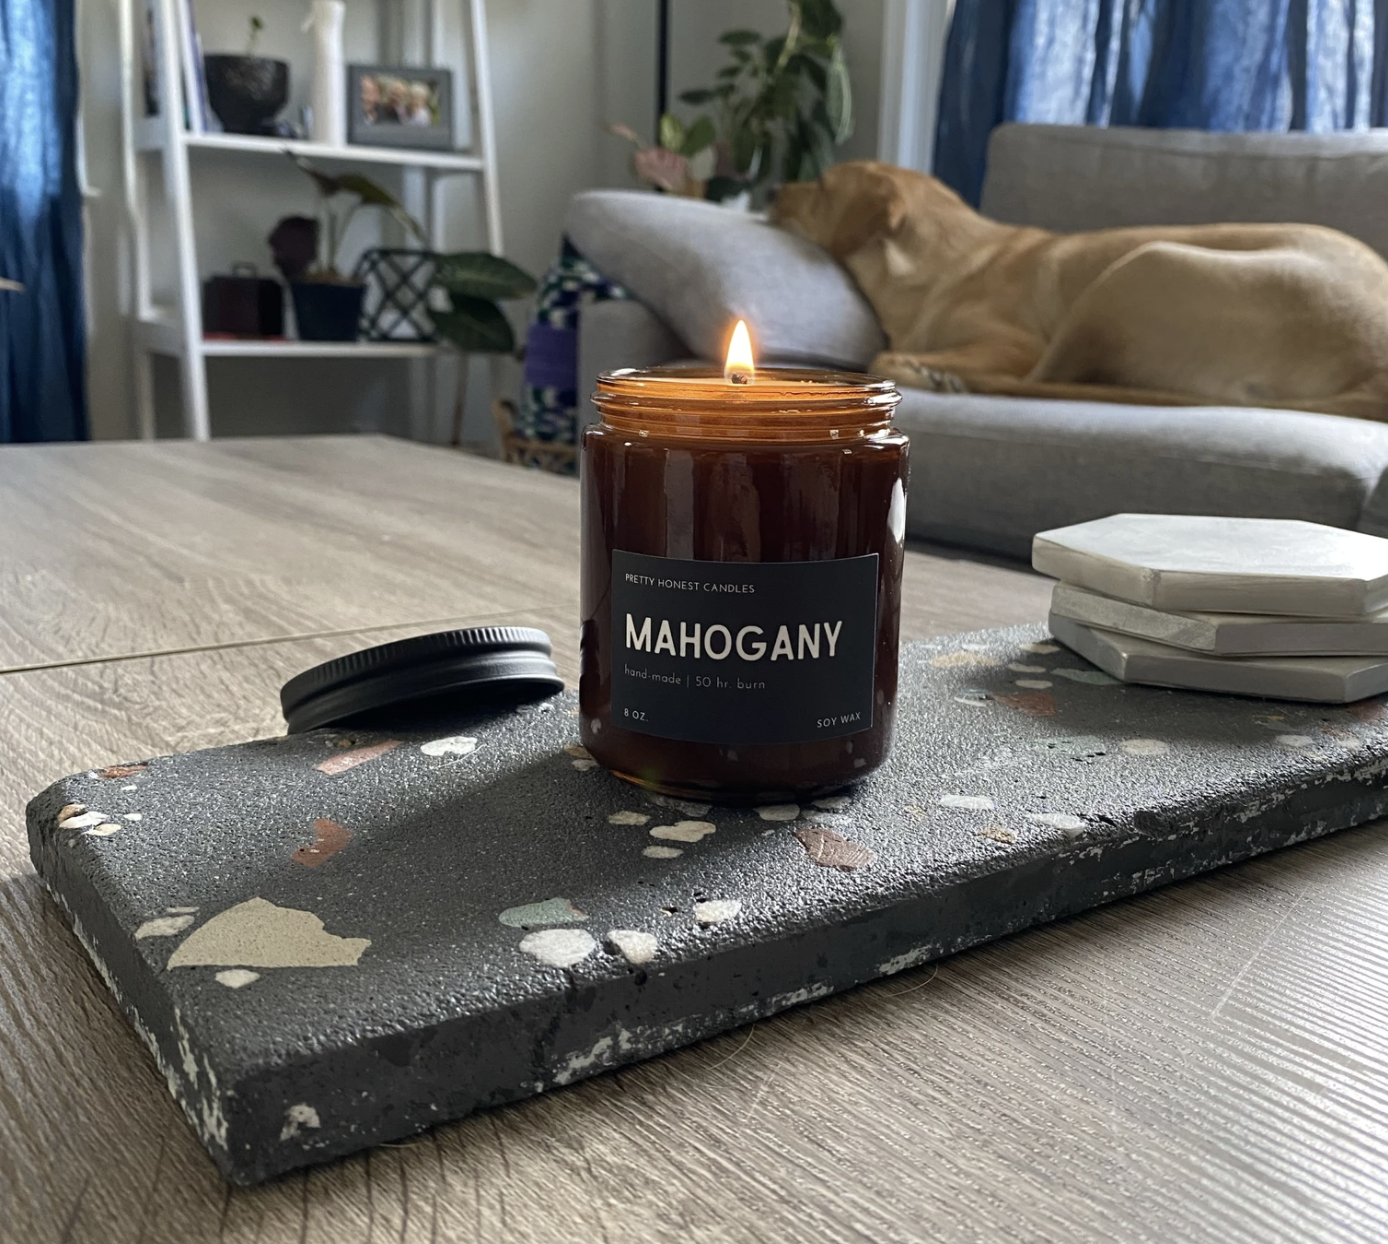 Mahogany soy candle on top of rectangular coaster in living room